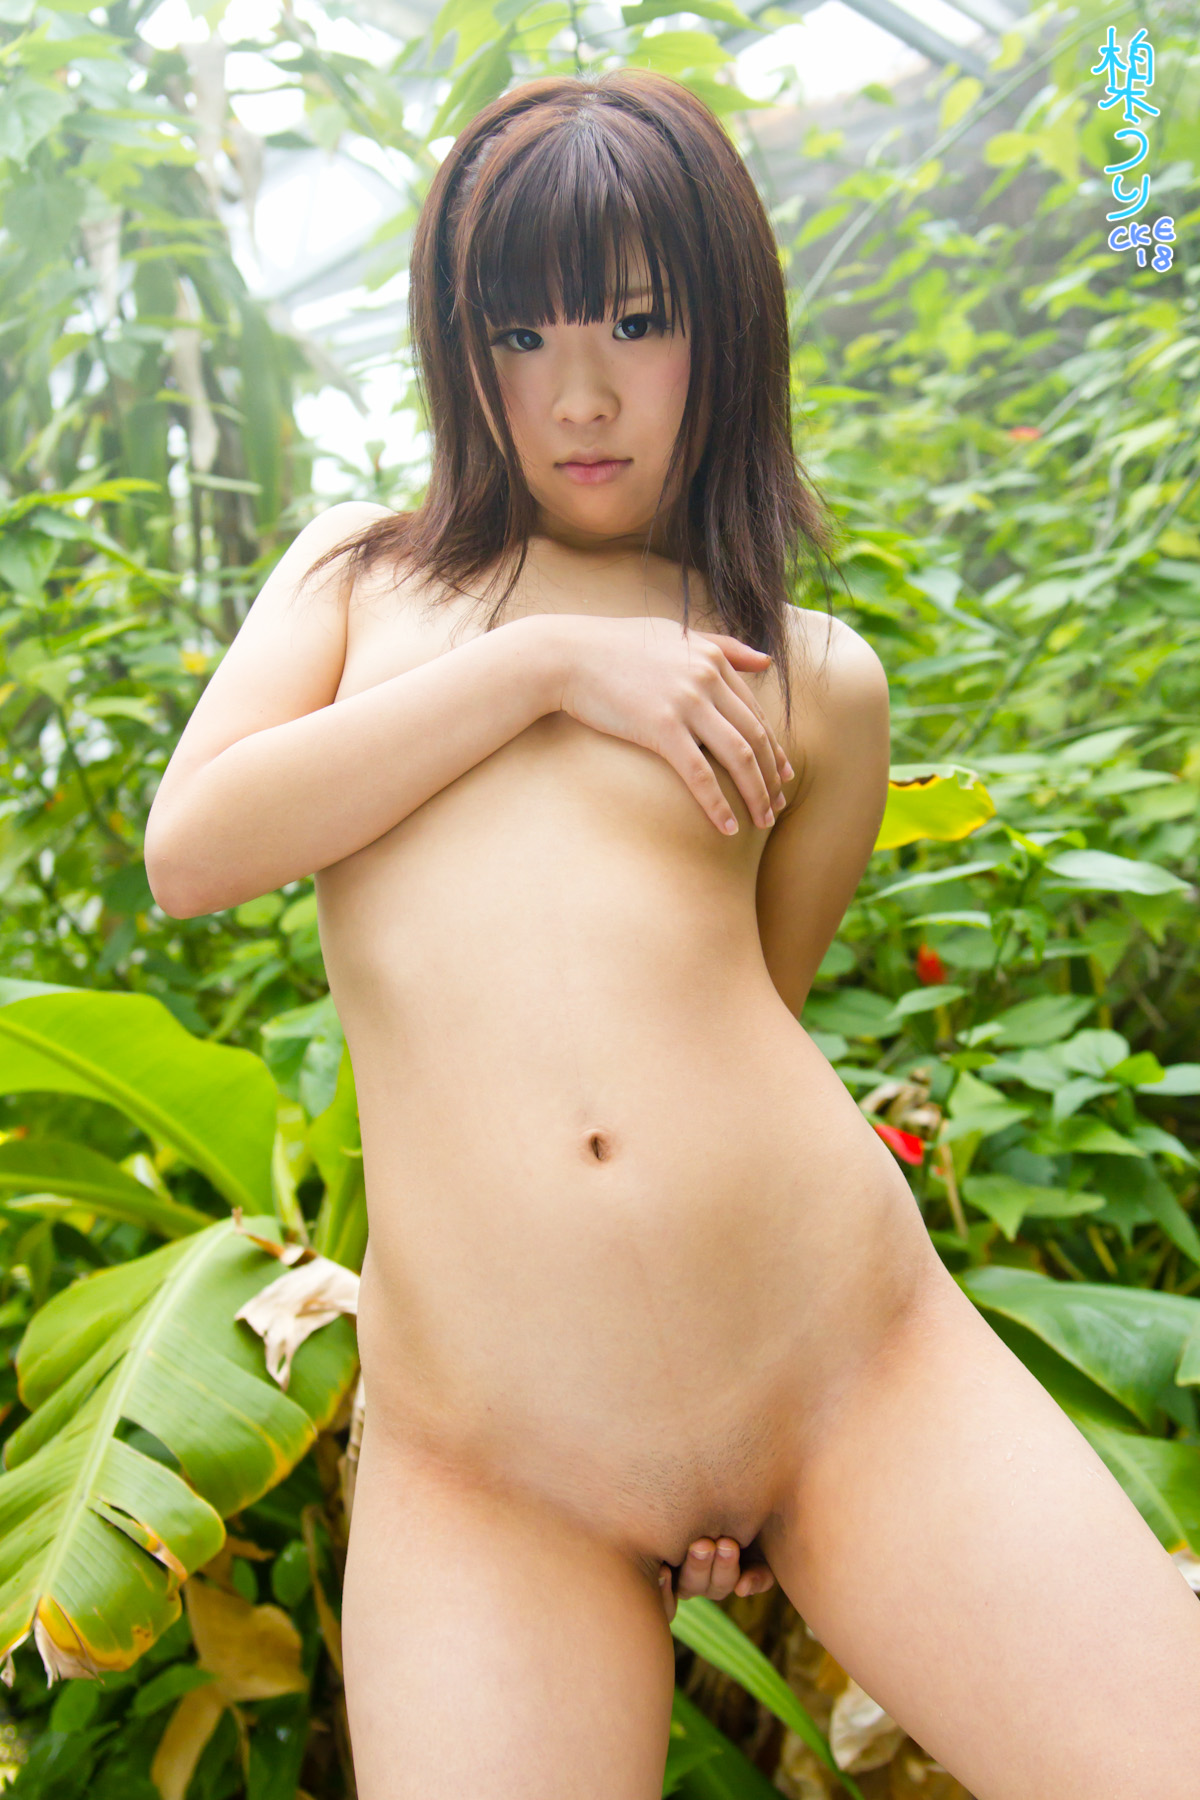 japanese girl sex porn Petite Uri plays with a toy and imagines being in a jungle. That's this  video concept she made up. Do you think it's Uri's first time licking a toy?